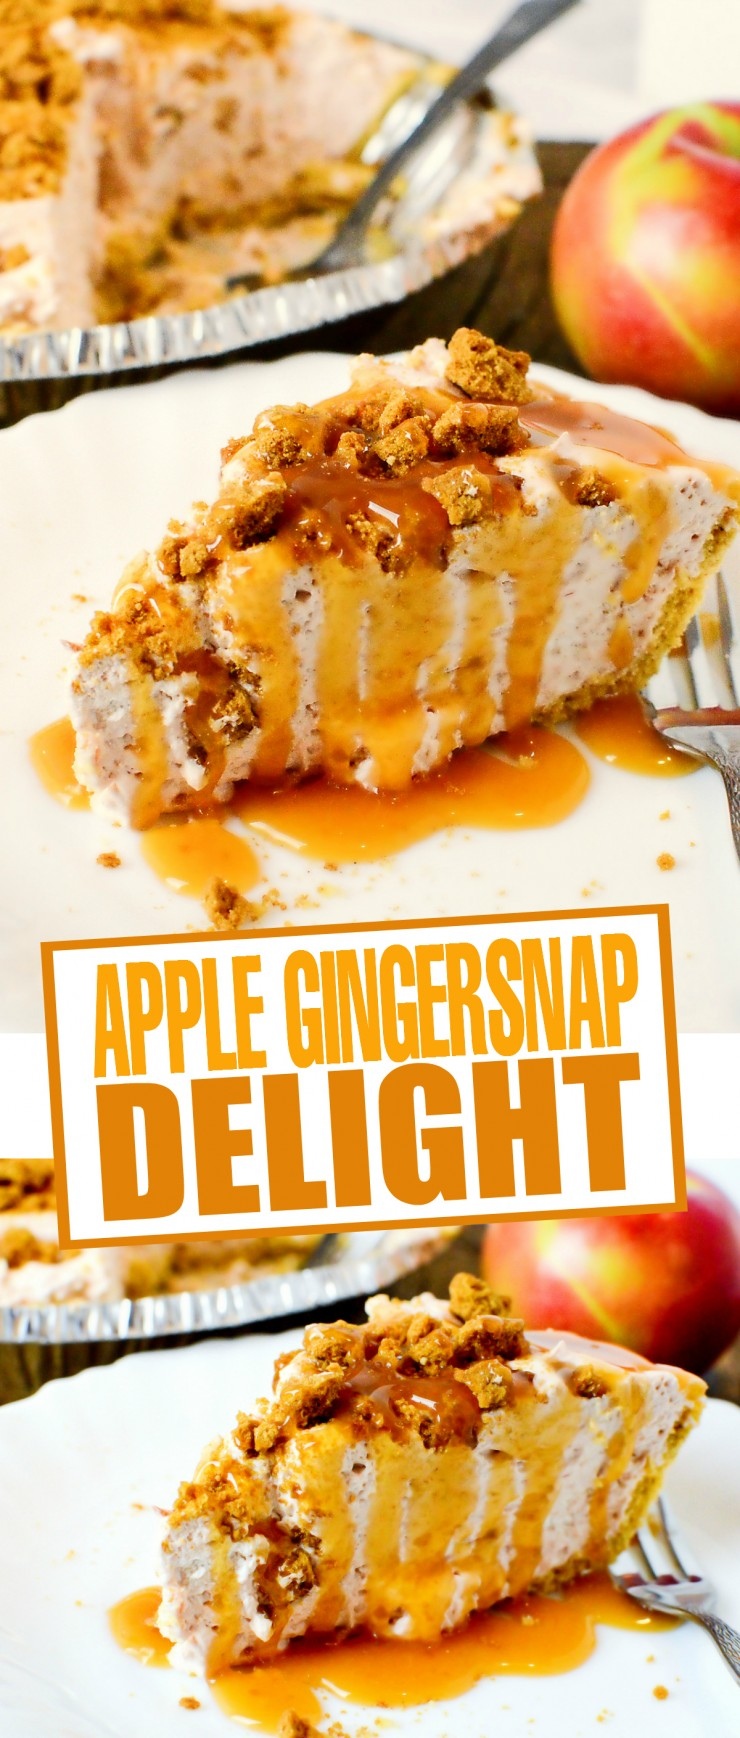 This Apple Gingersnap Delight recipe is easy and full of incredle flavours, it's also a versatile dessert - add in cream cheese and make it a Apple Cheesecake Gingersnap Delight!